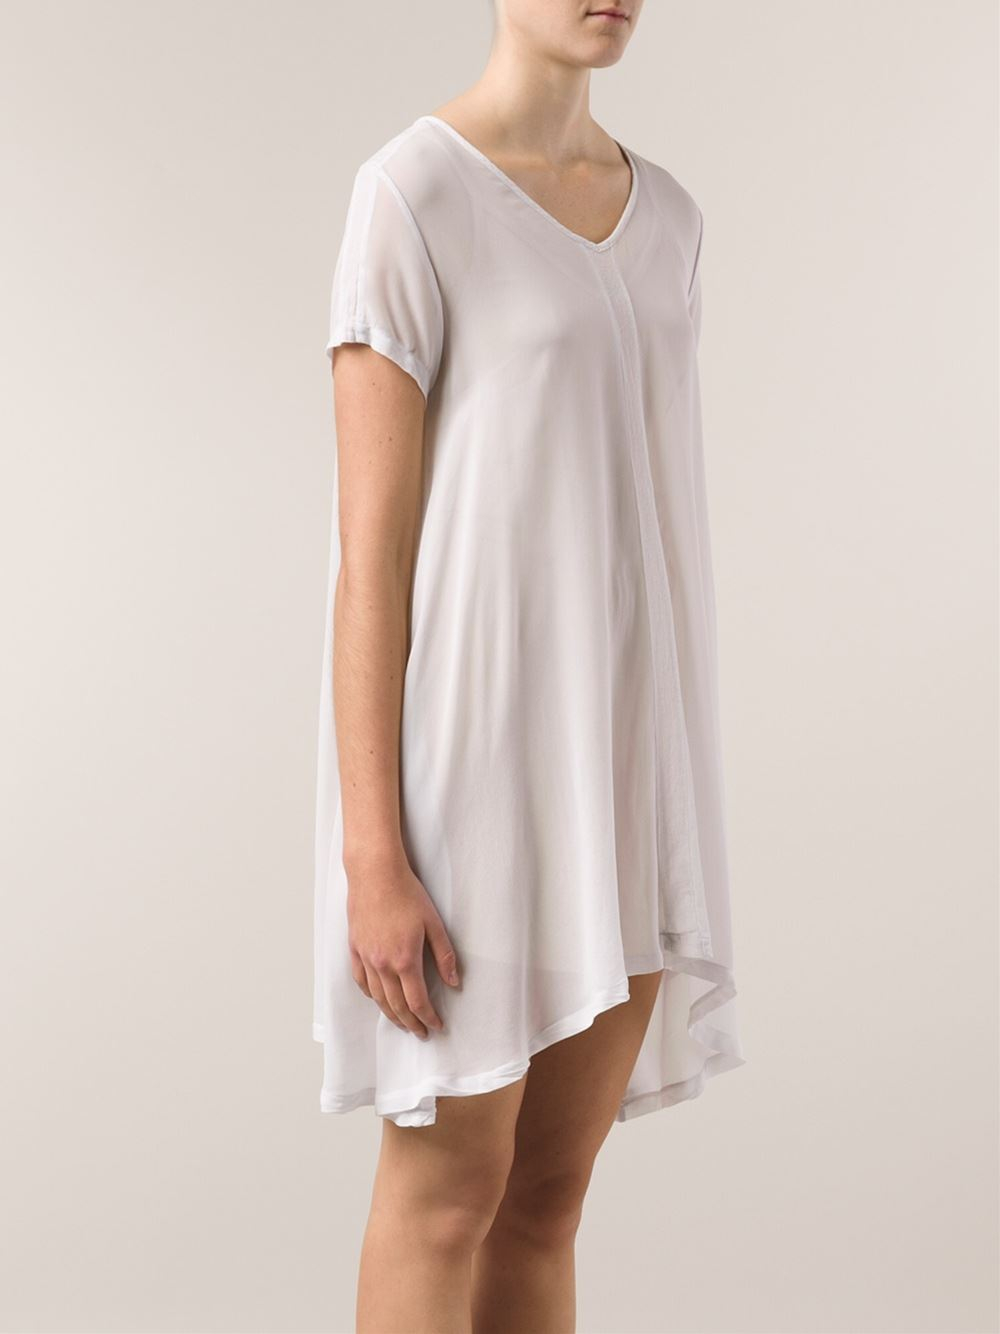 Lacausa t shirt dress in white lyst for Dressy white t shirt